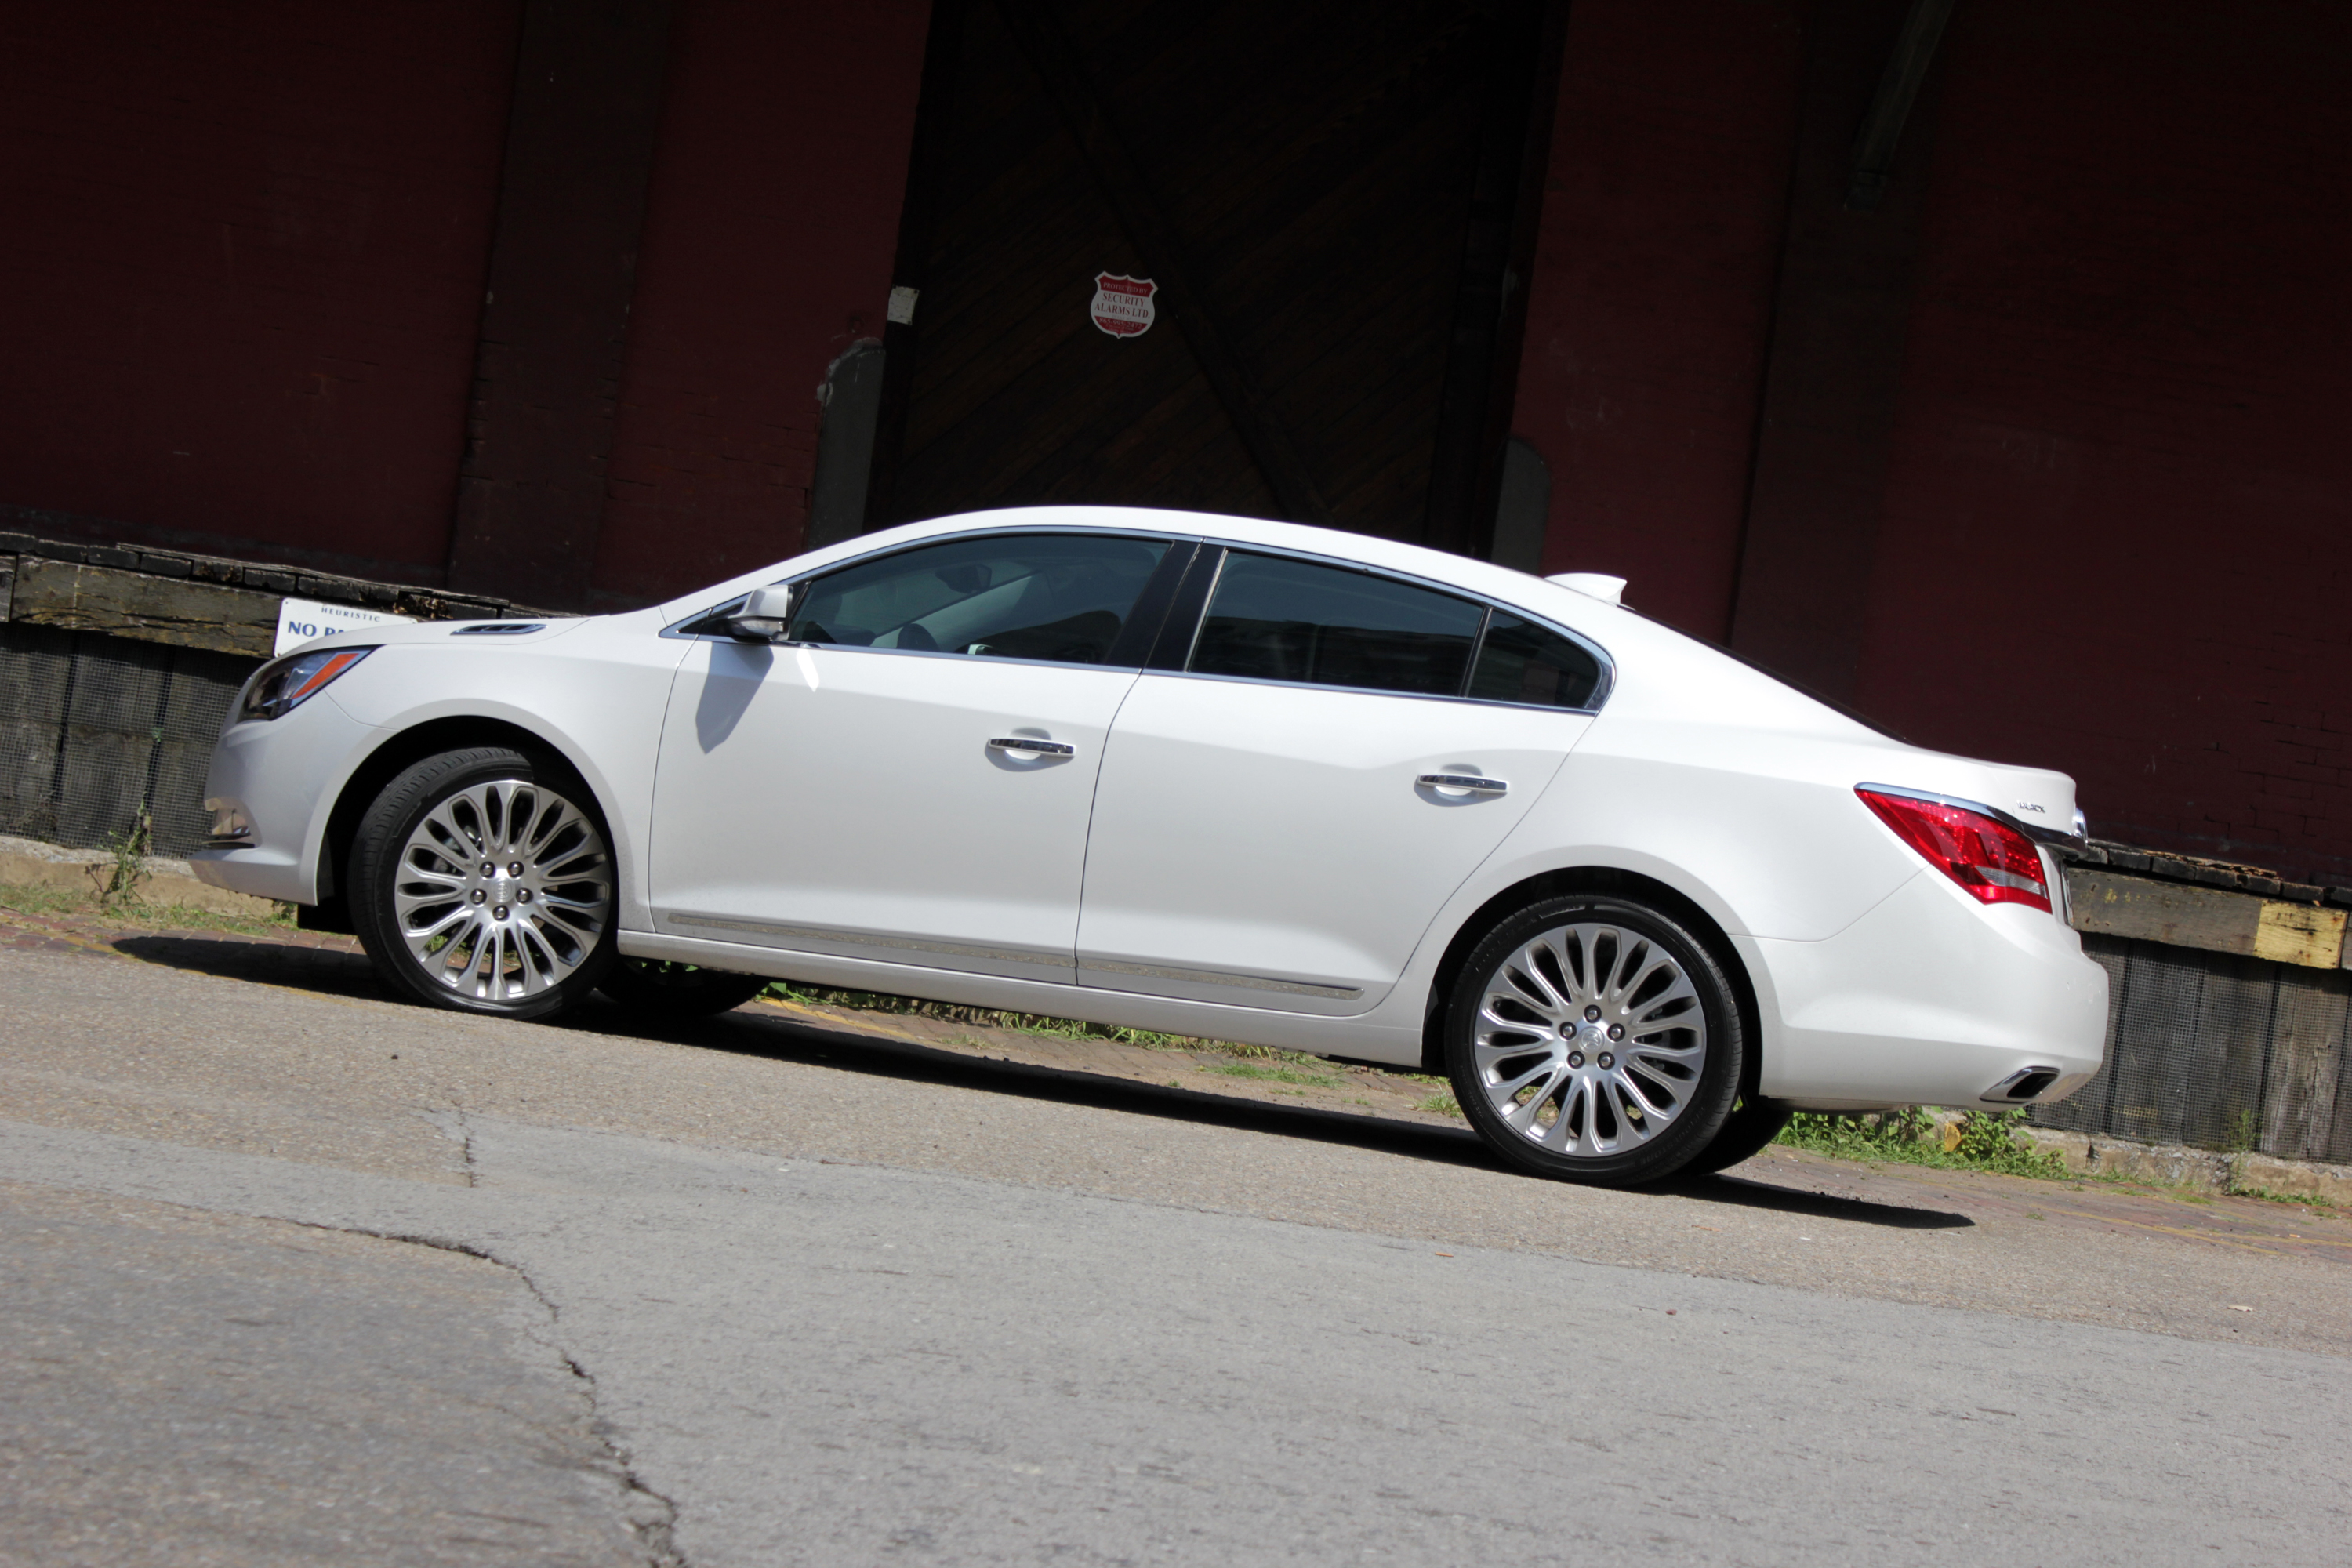 front cx buick review photos lacrosse sedan reviews drive features price wheel exterior